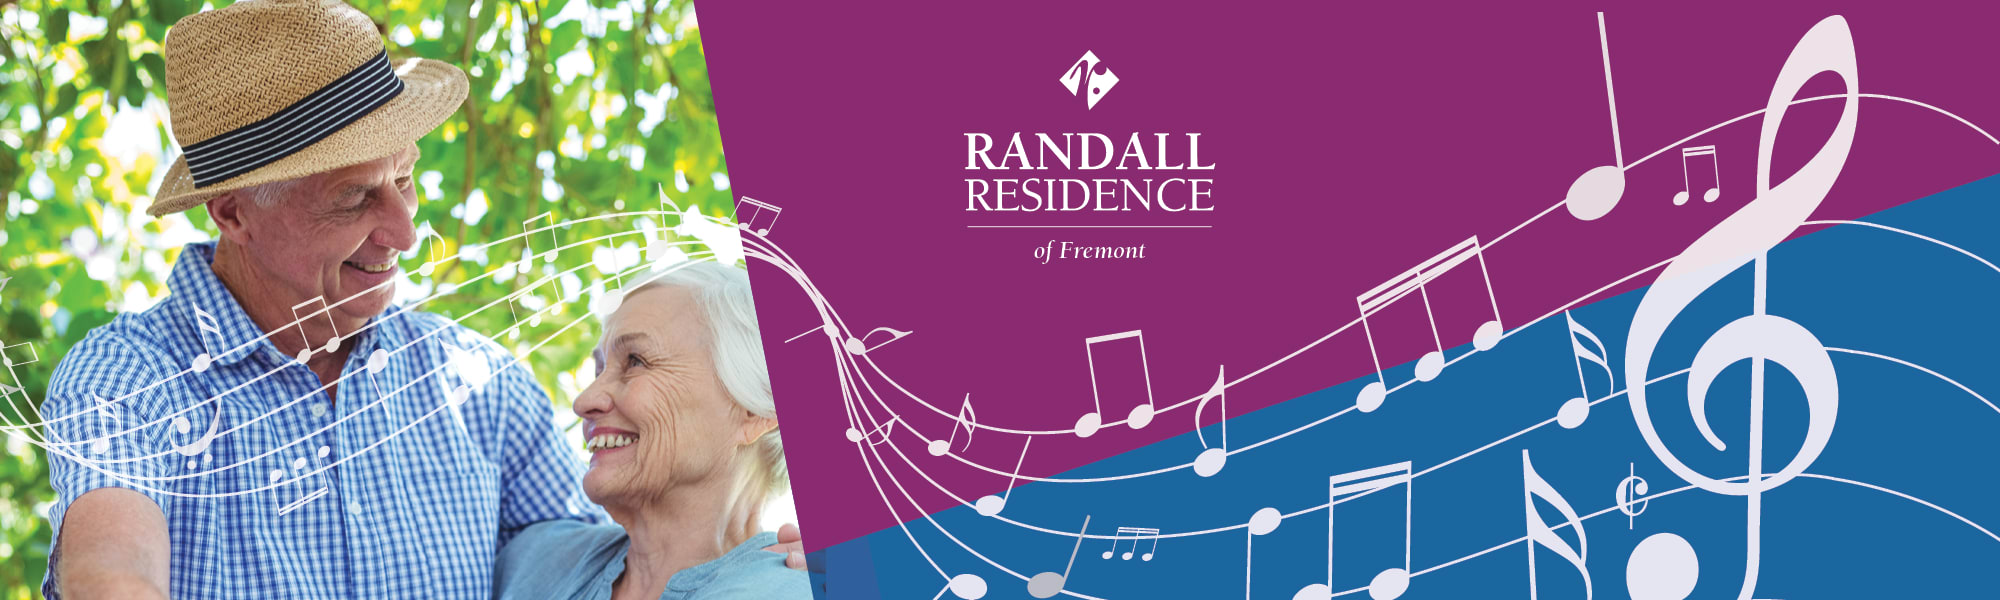 Events at Randall Residence of Fremont in Fremont, Ohio